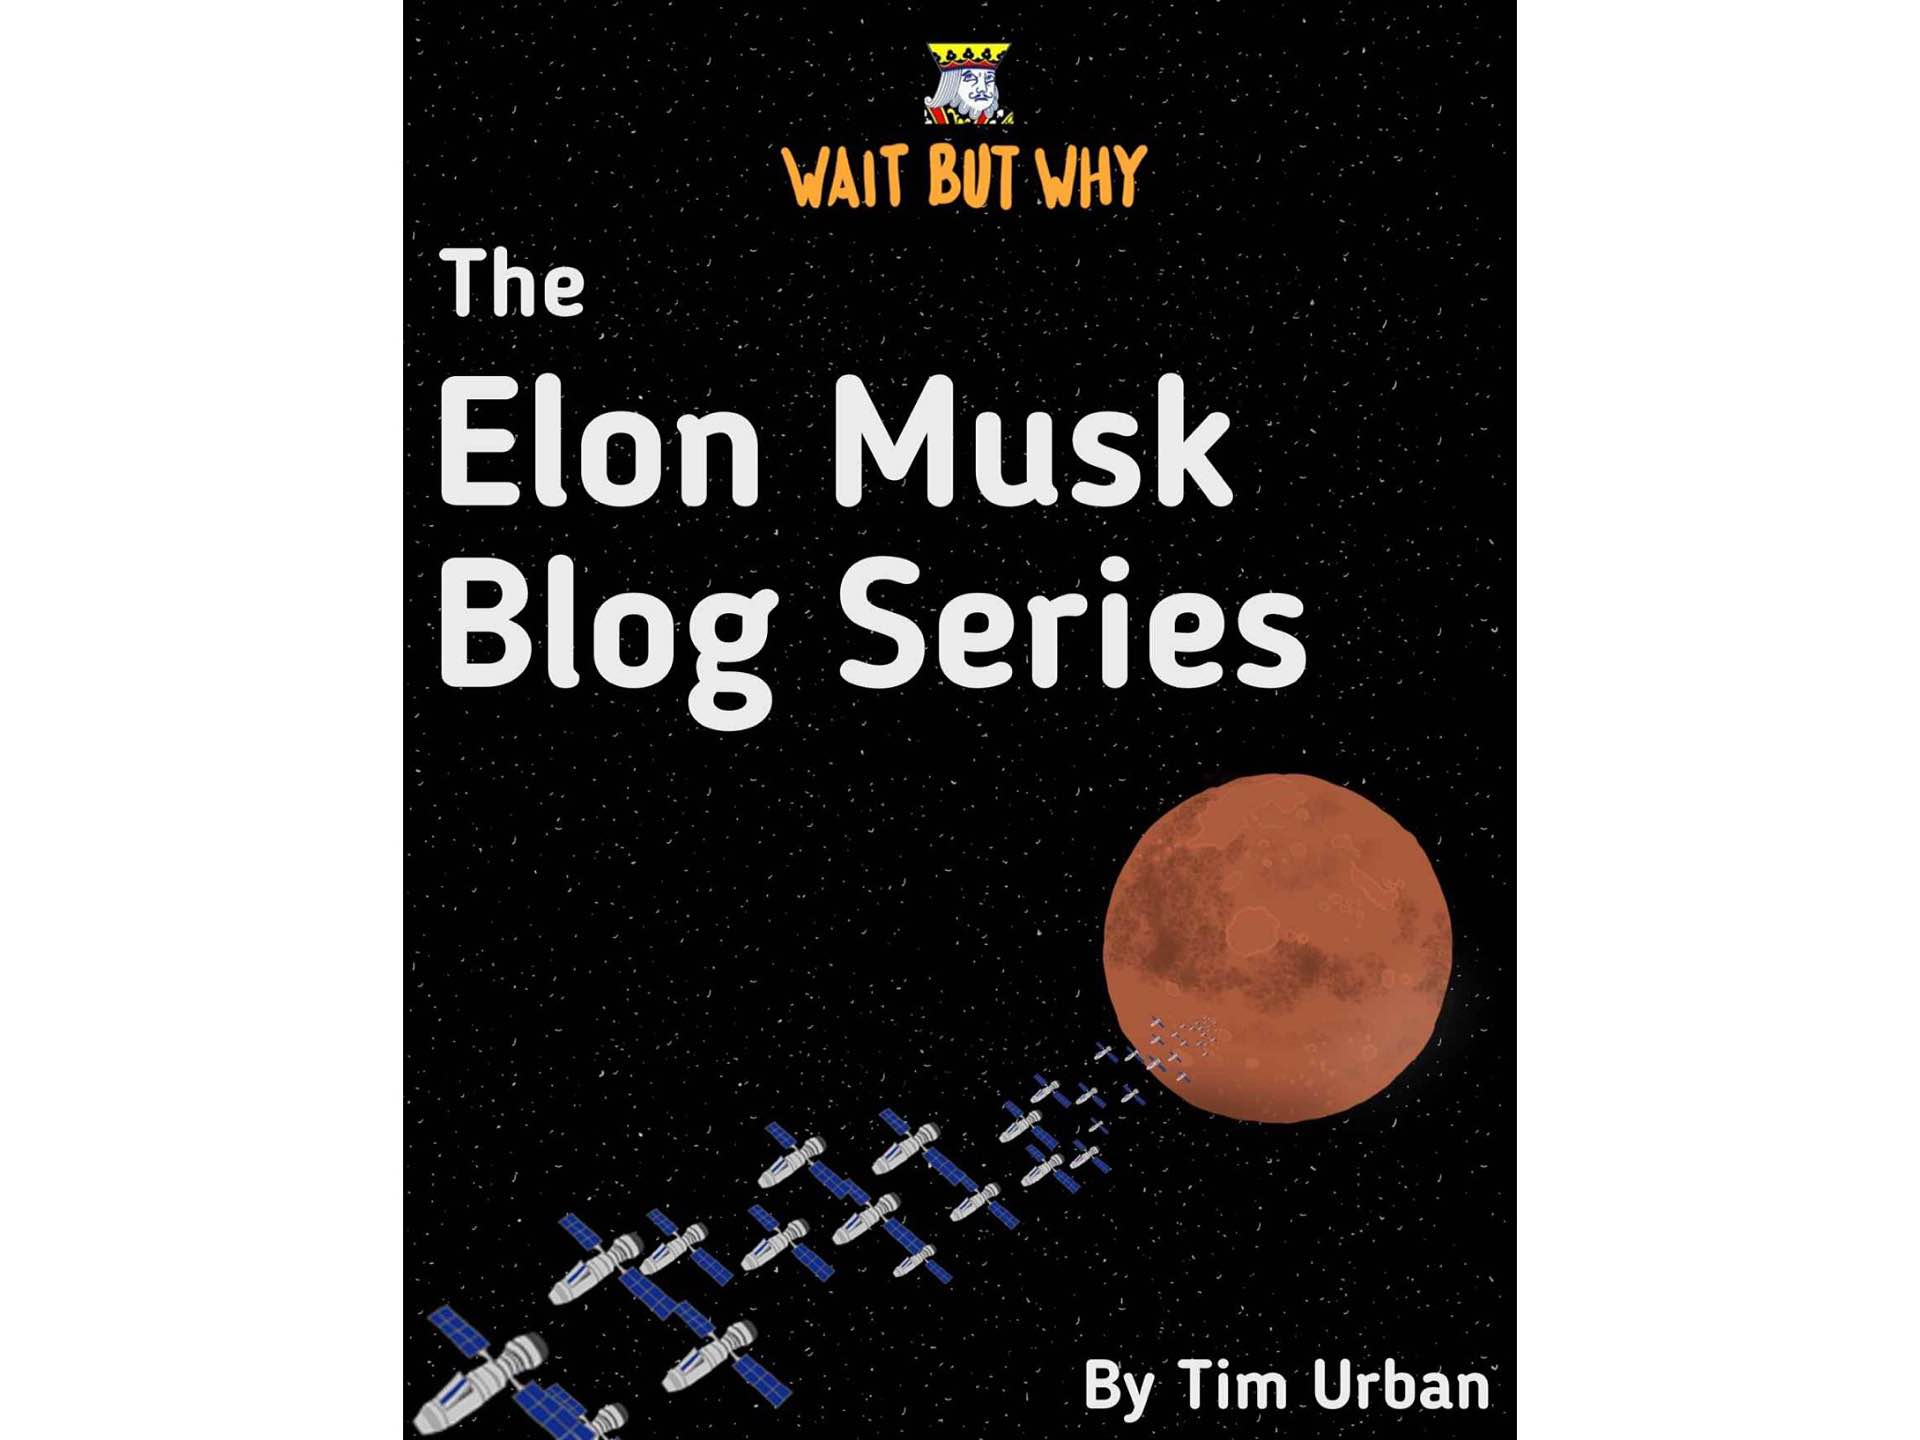 The Elon Musk Blog Series Kindle ebook by Tim Urban.